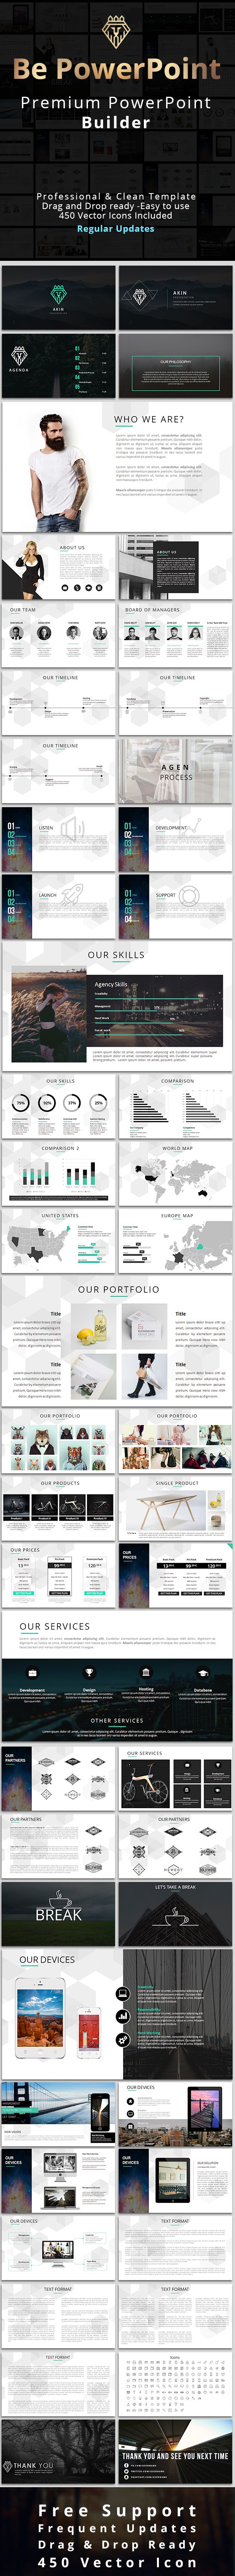 Pin by Loic Bonbon on Presentation | Business powerpoint templates